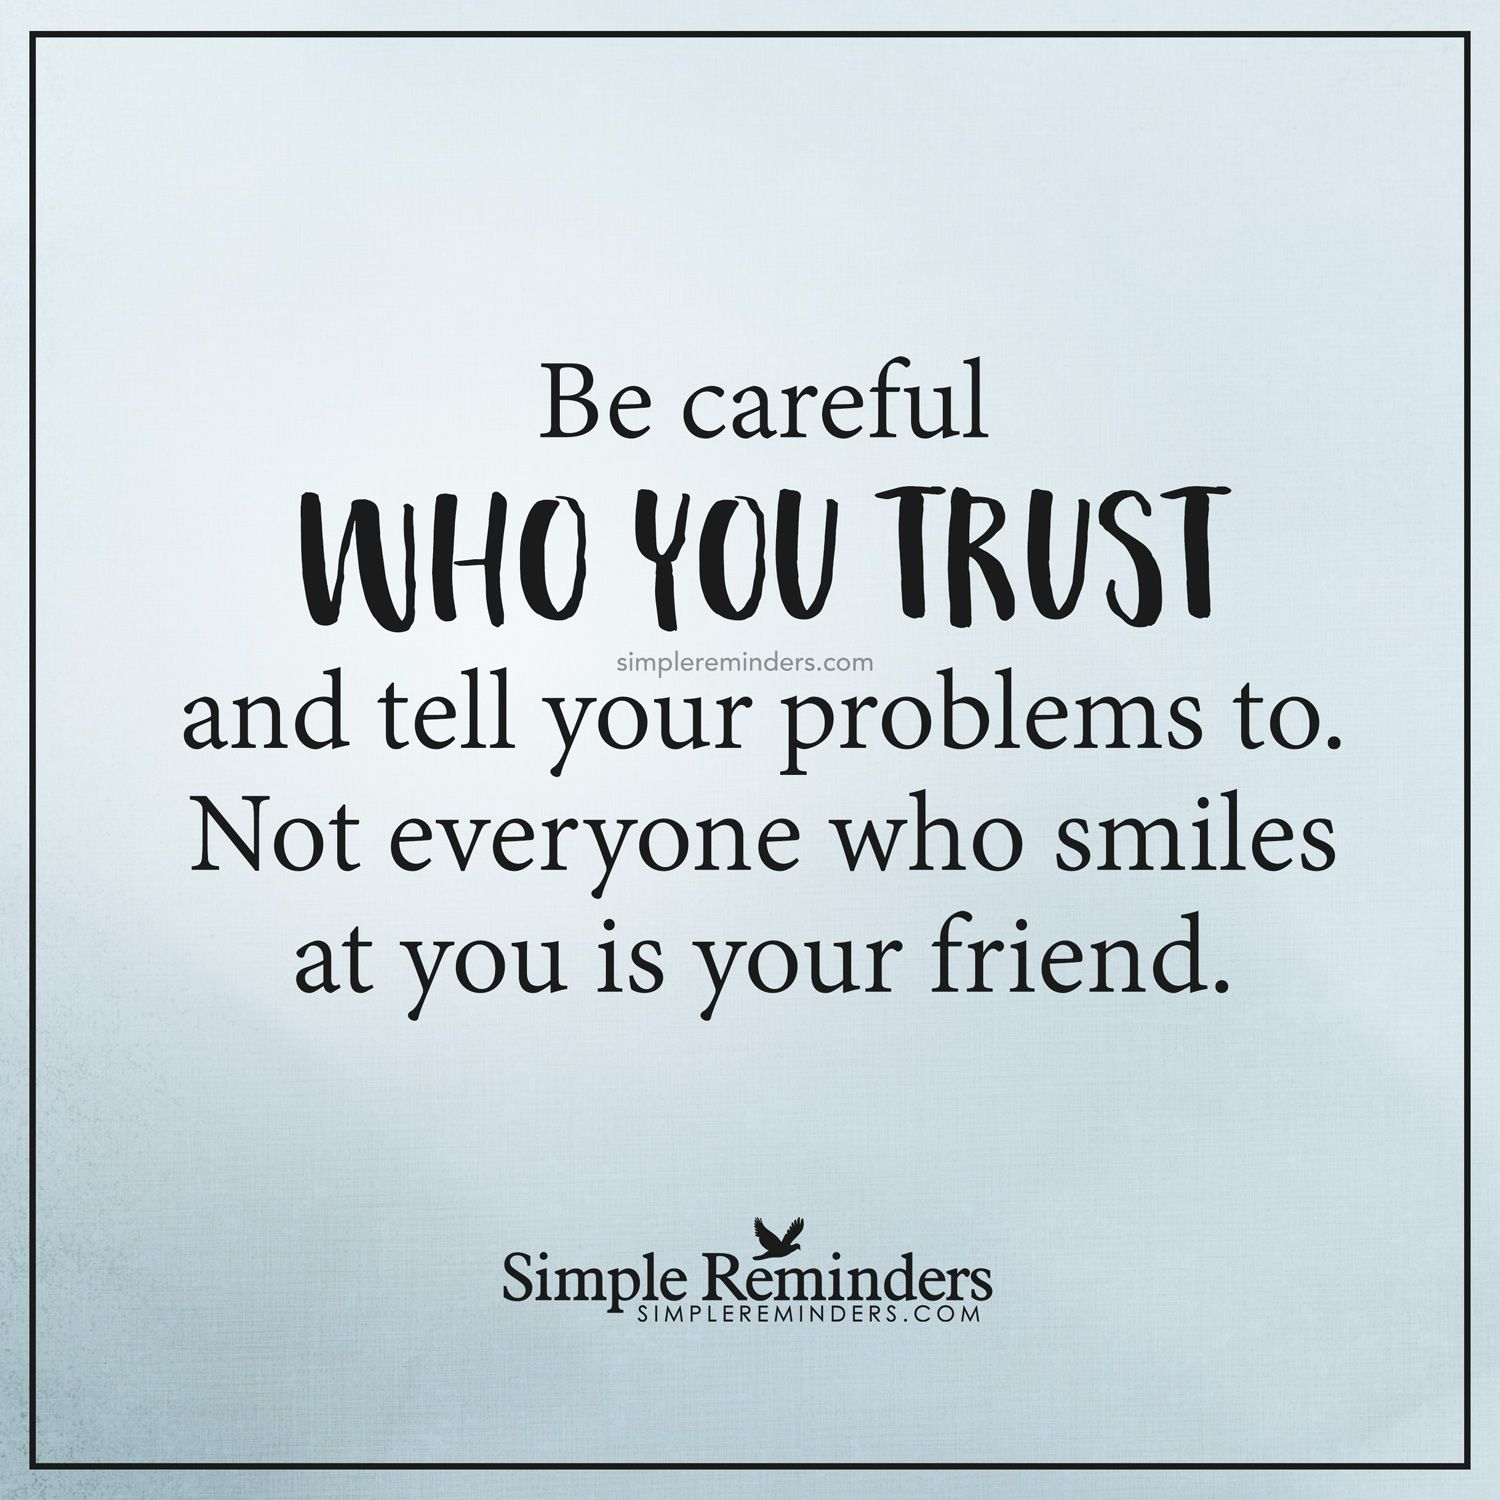 Be Careful Who You Trust Be Careful Who You Trust And Tell